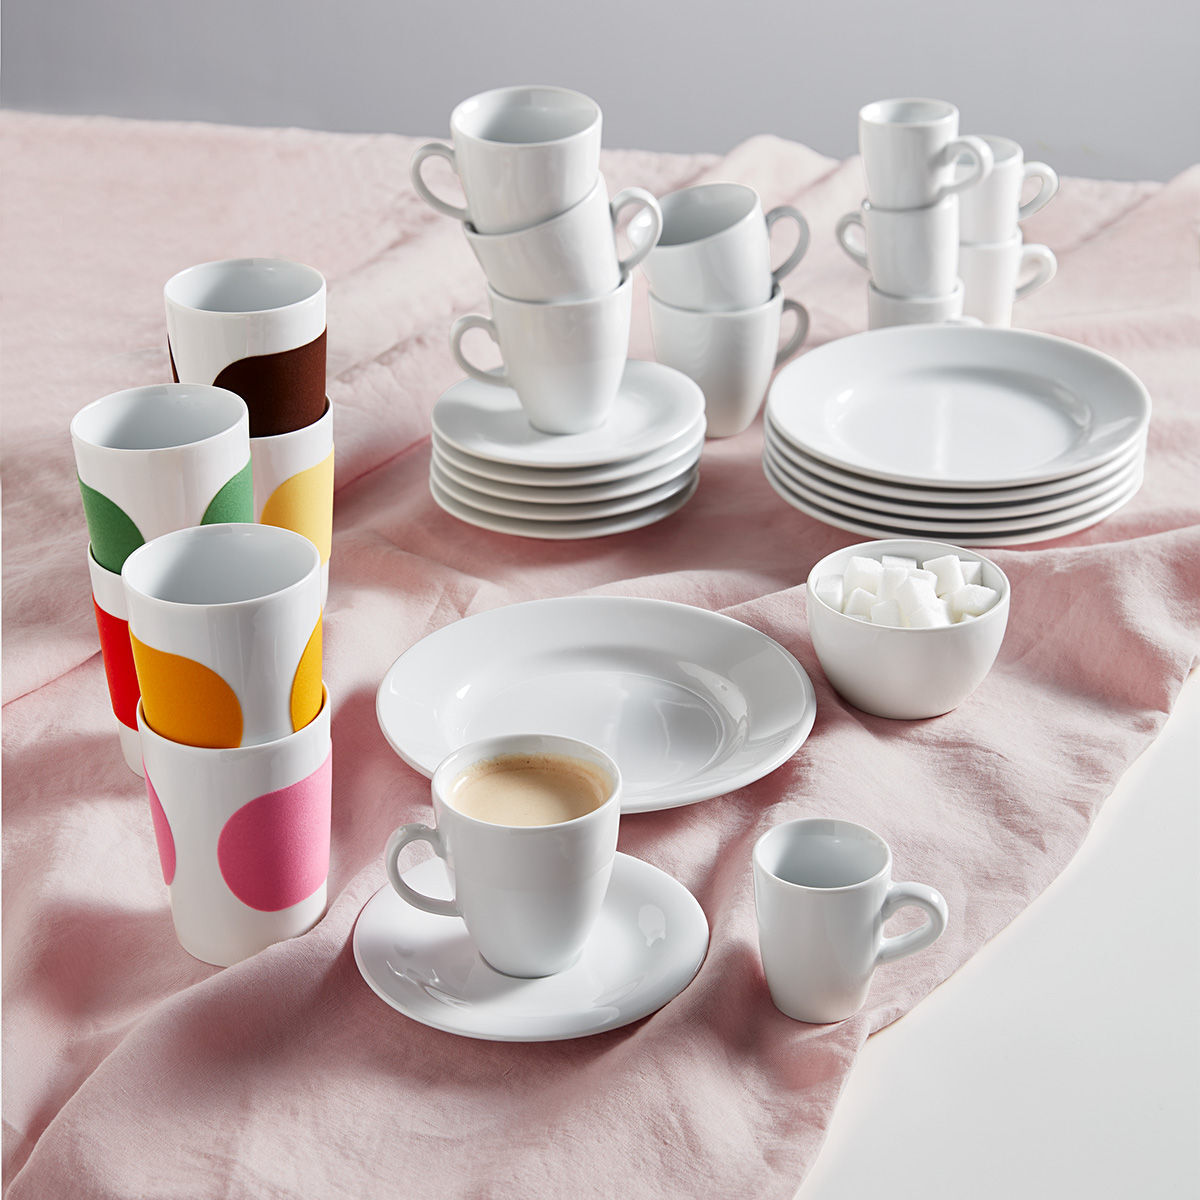 kahla porzellan kaffee set pronto 25 teilig karstadt online shop. Black Bedroom Furniture Sets. Home Design Ideas